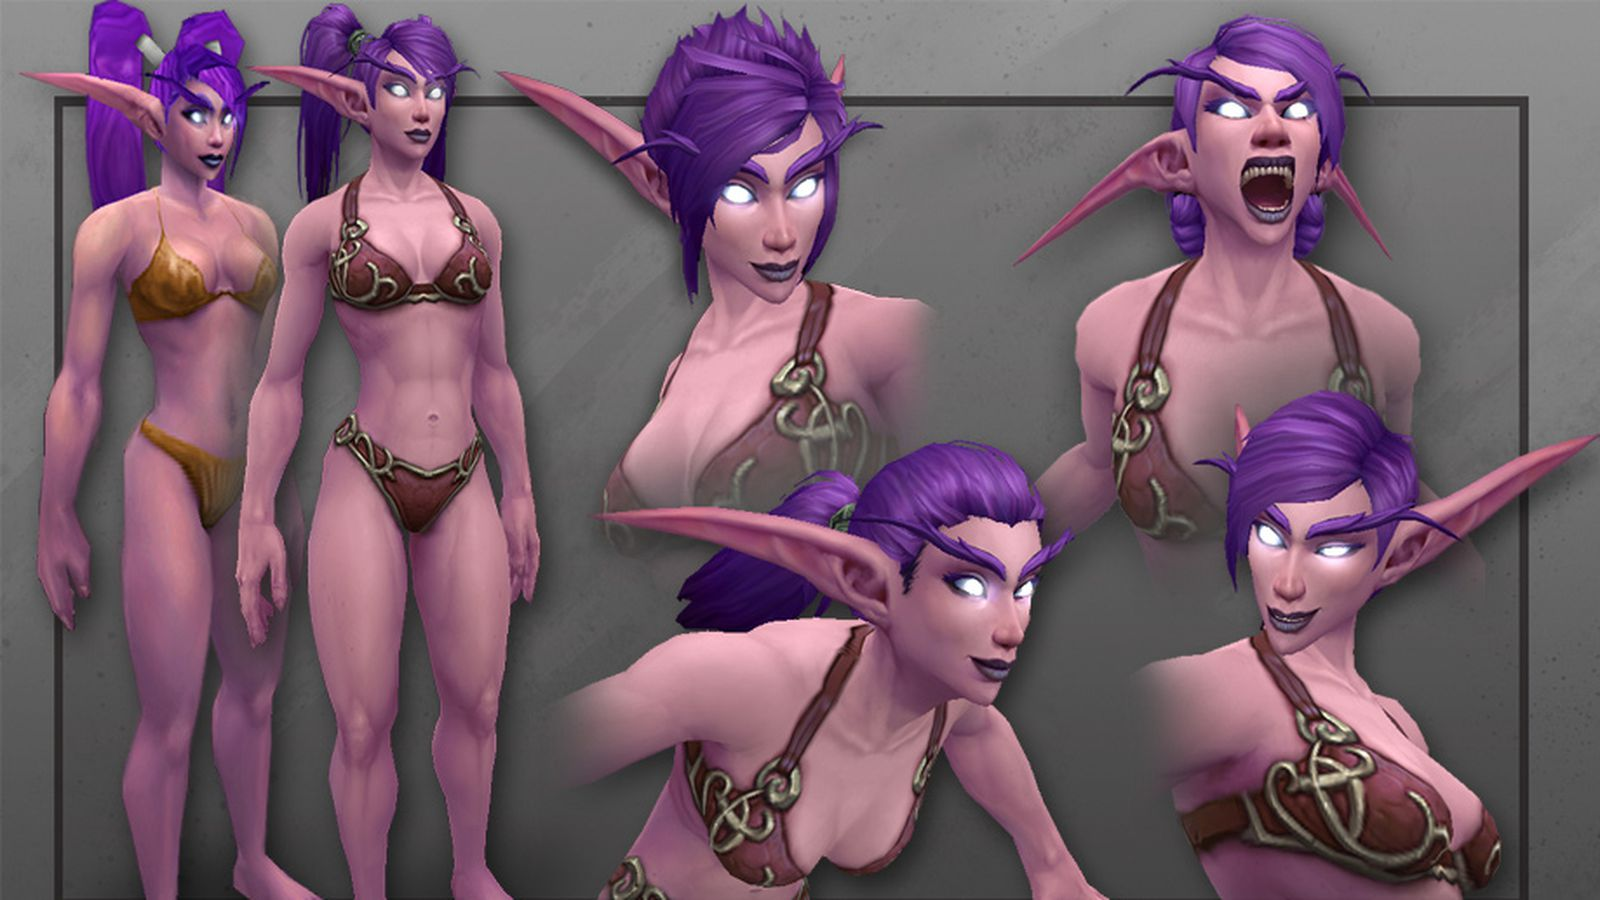 3d gnome sucks off night elf hentai scene